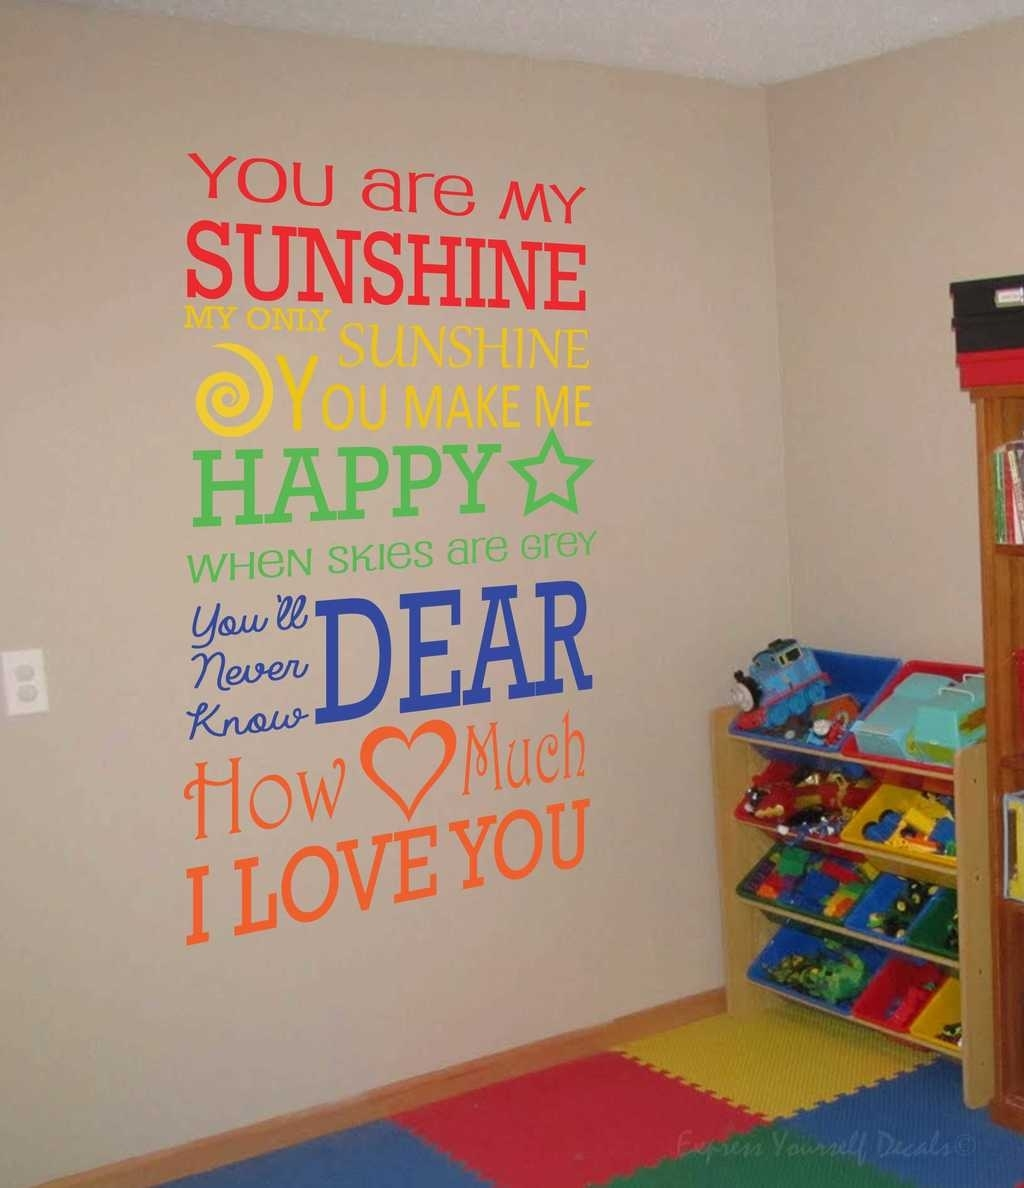 Express Love With Our Love Based Wall Decals Intended For 2018 You Are My Sunshine Wall Art (View 4 of 15)